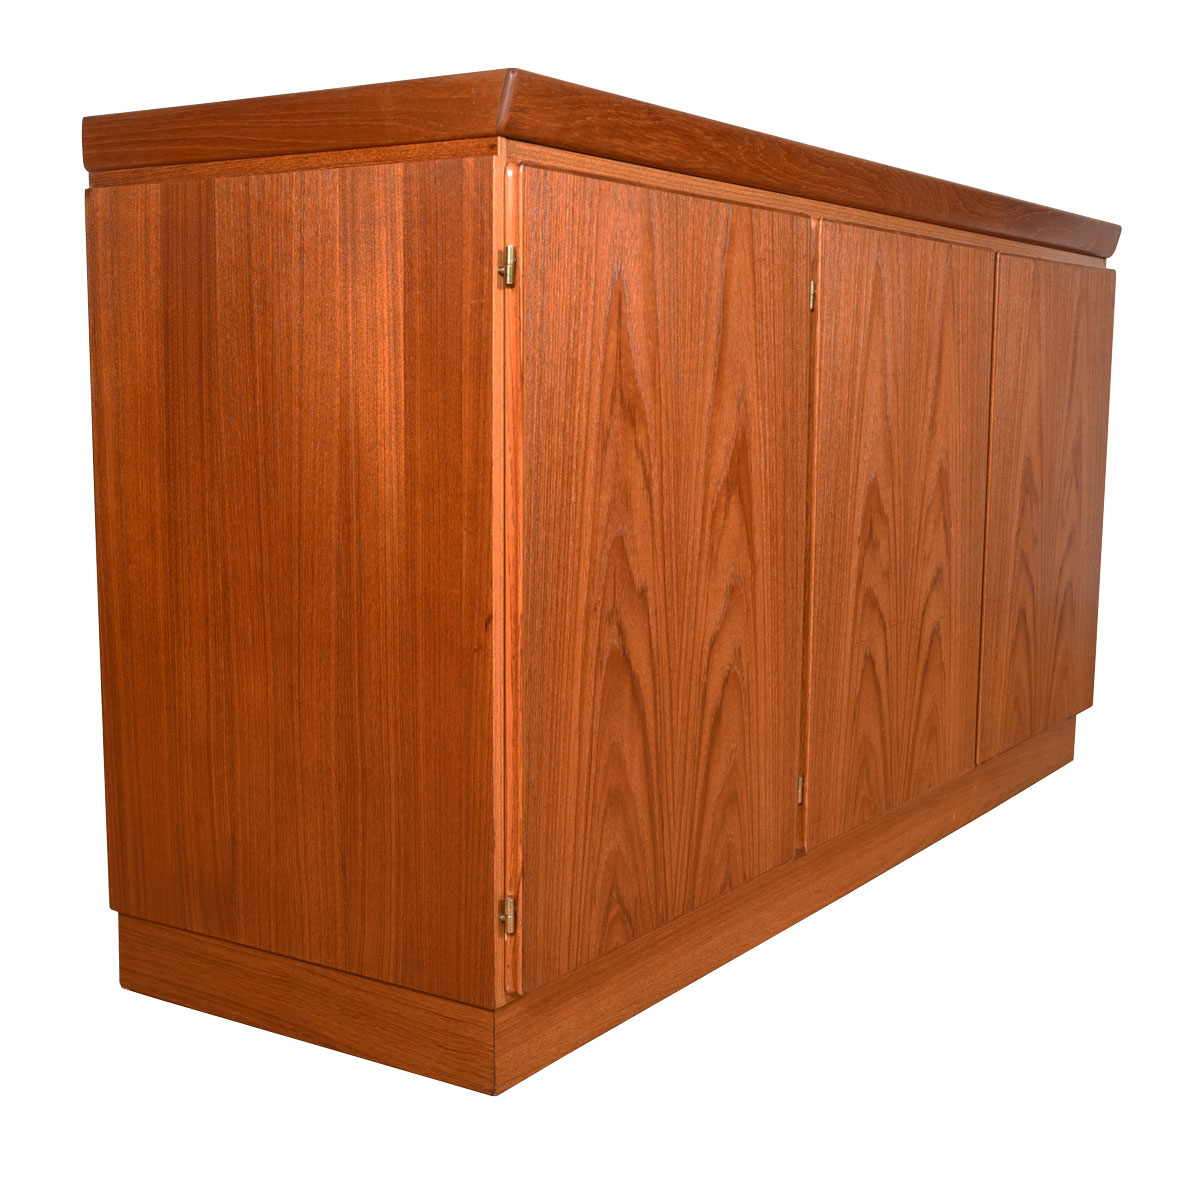 32.5″ Tall Danish Teak Sideboard / Storage Cabinet with 3 Doors